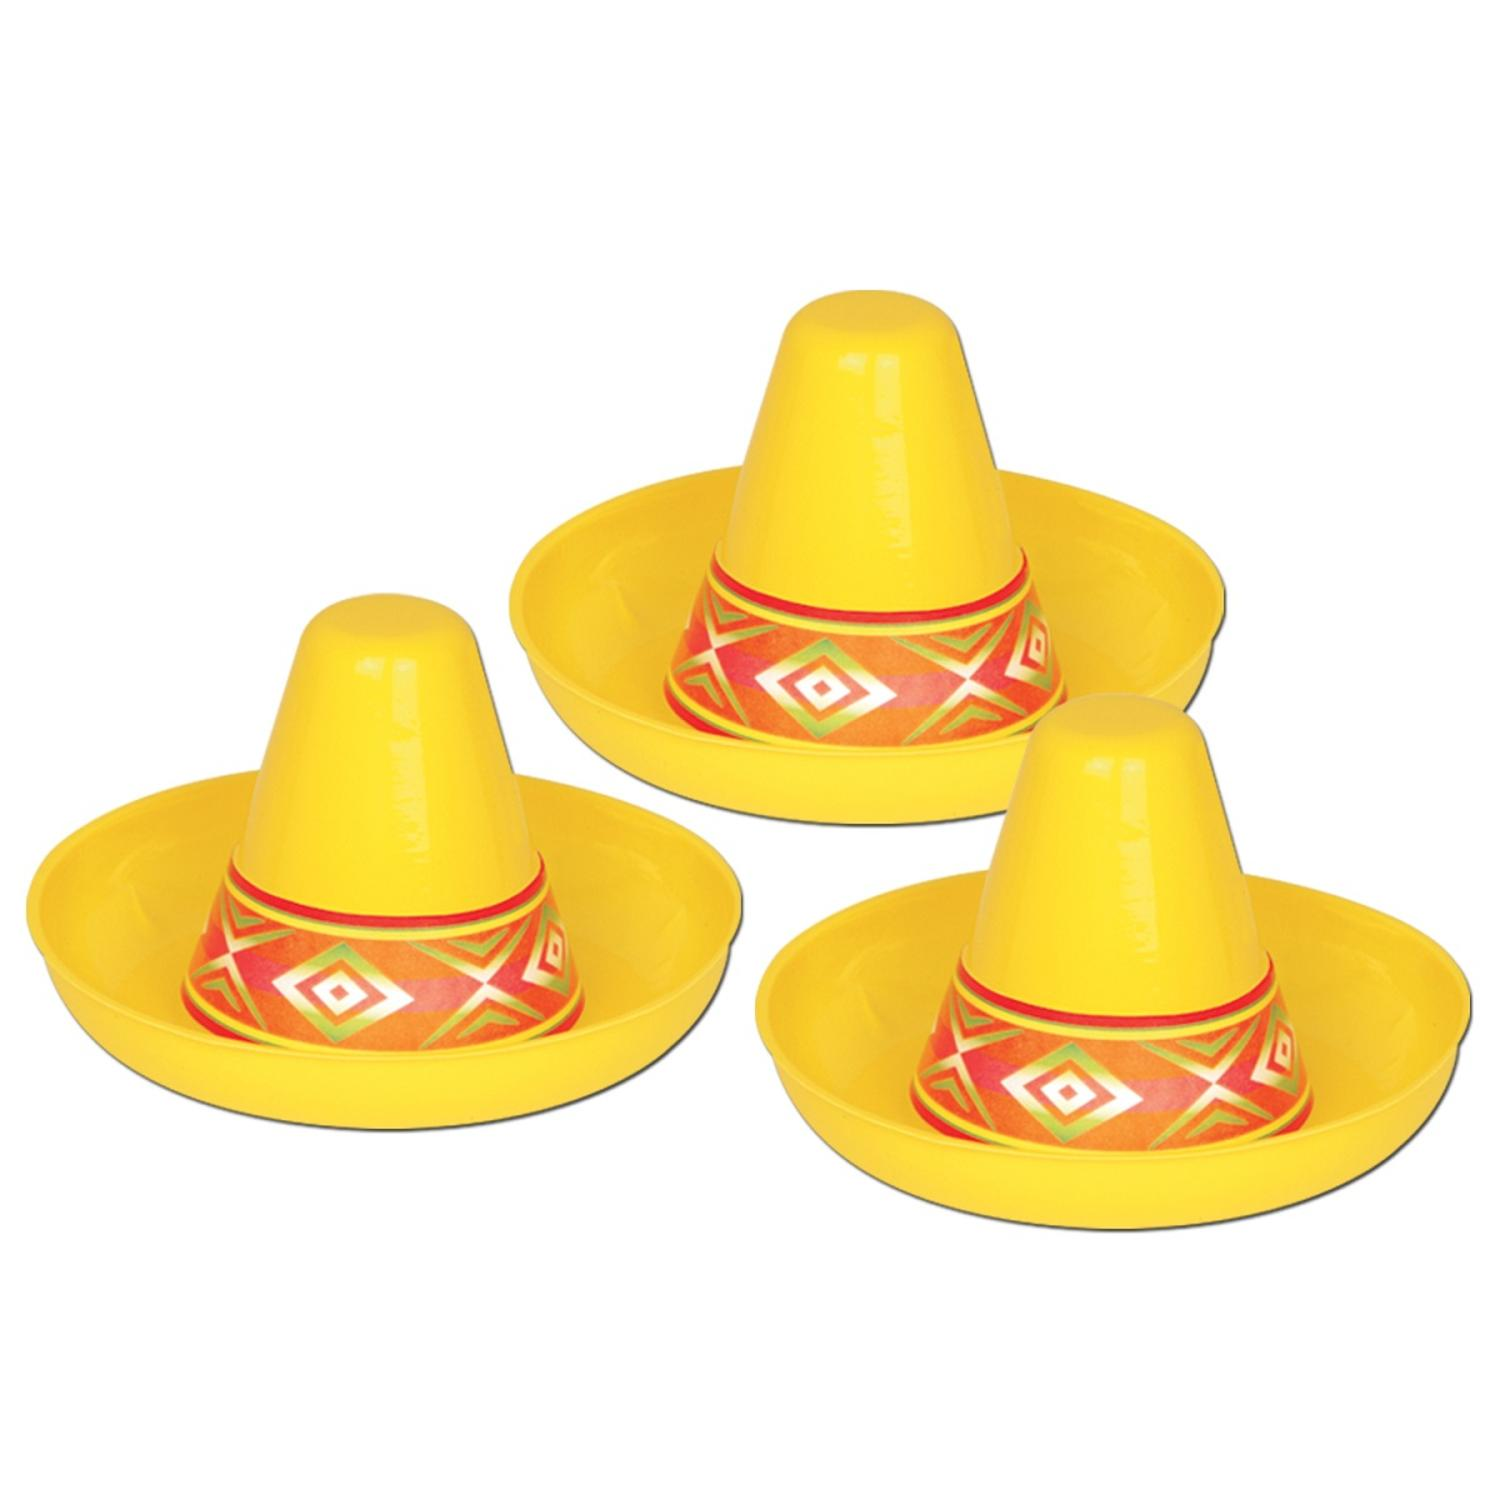 Club Pack of 48 Yellow Mexican Fiesta Miniature Plastic Sombrero Party Decorations 4.5""